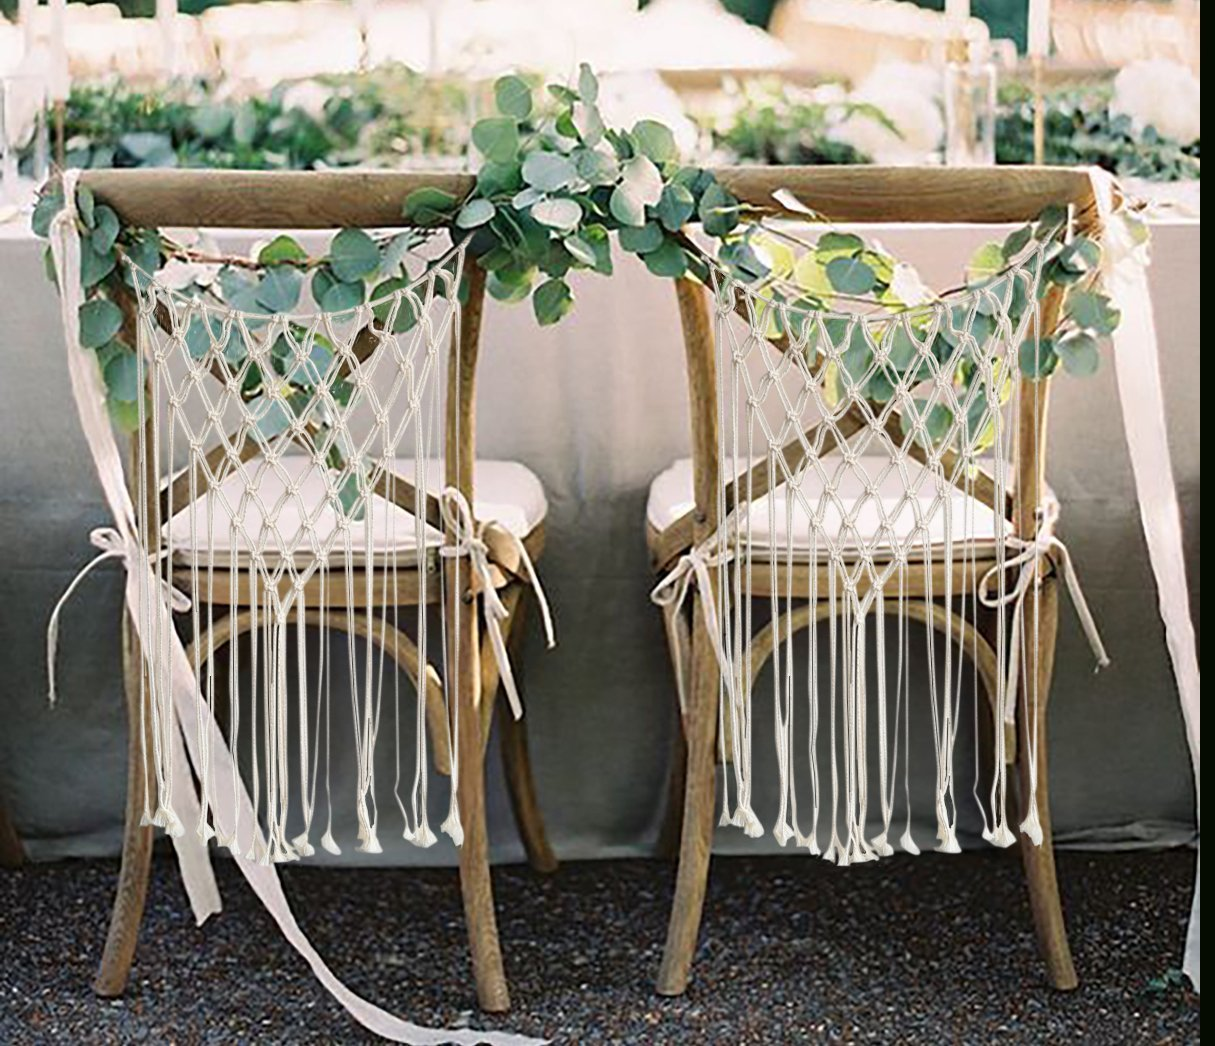 These Macrame Chair Backs From FLBER Is Perfect For Wedding And Ceremony.  Add A Warm, Boho Touch To Your Home.